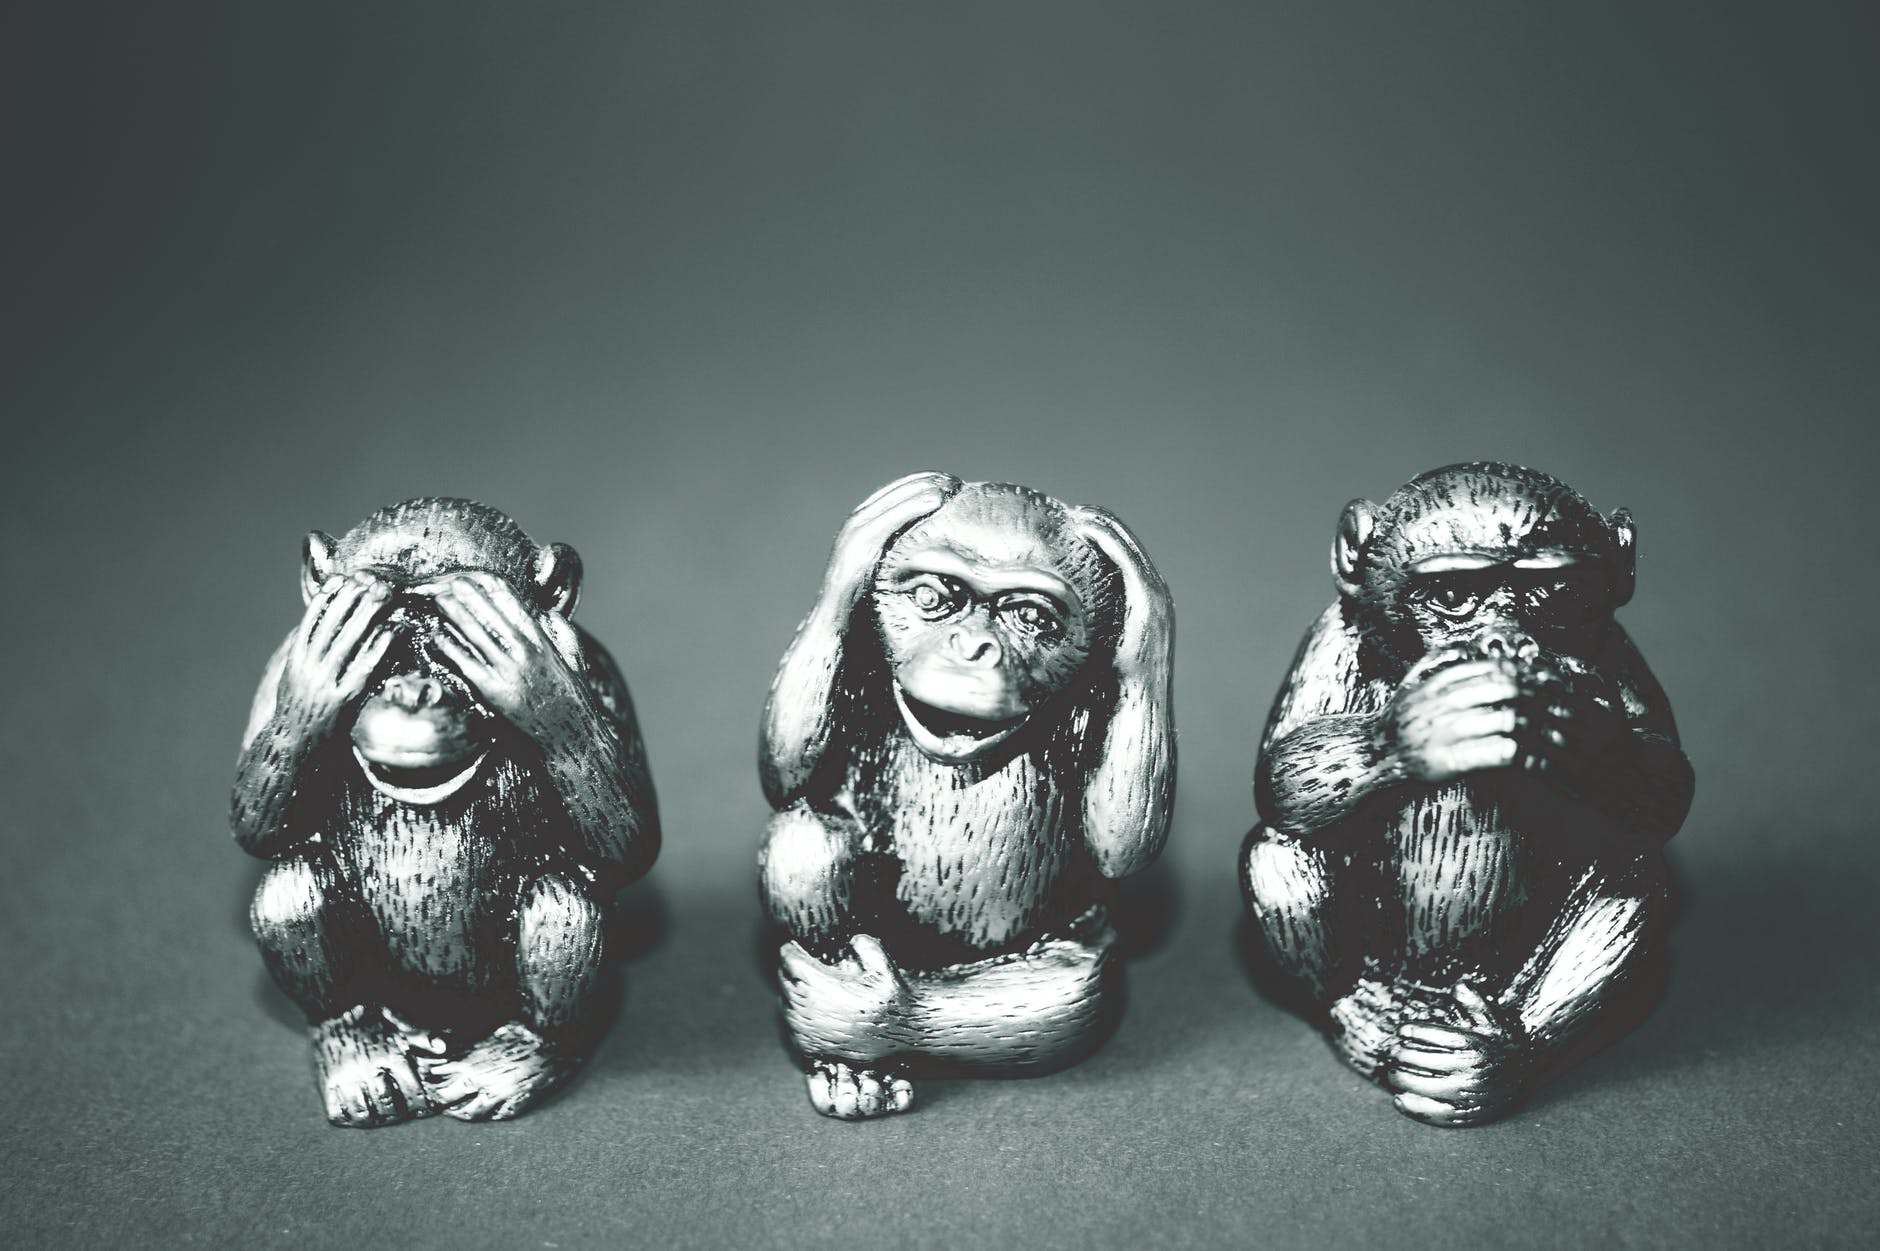 see no evil, speak no evil?